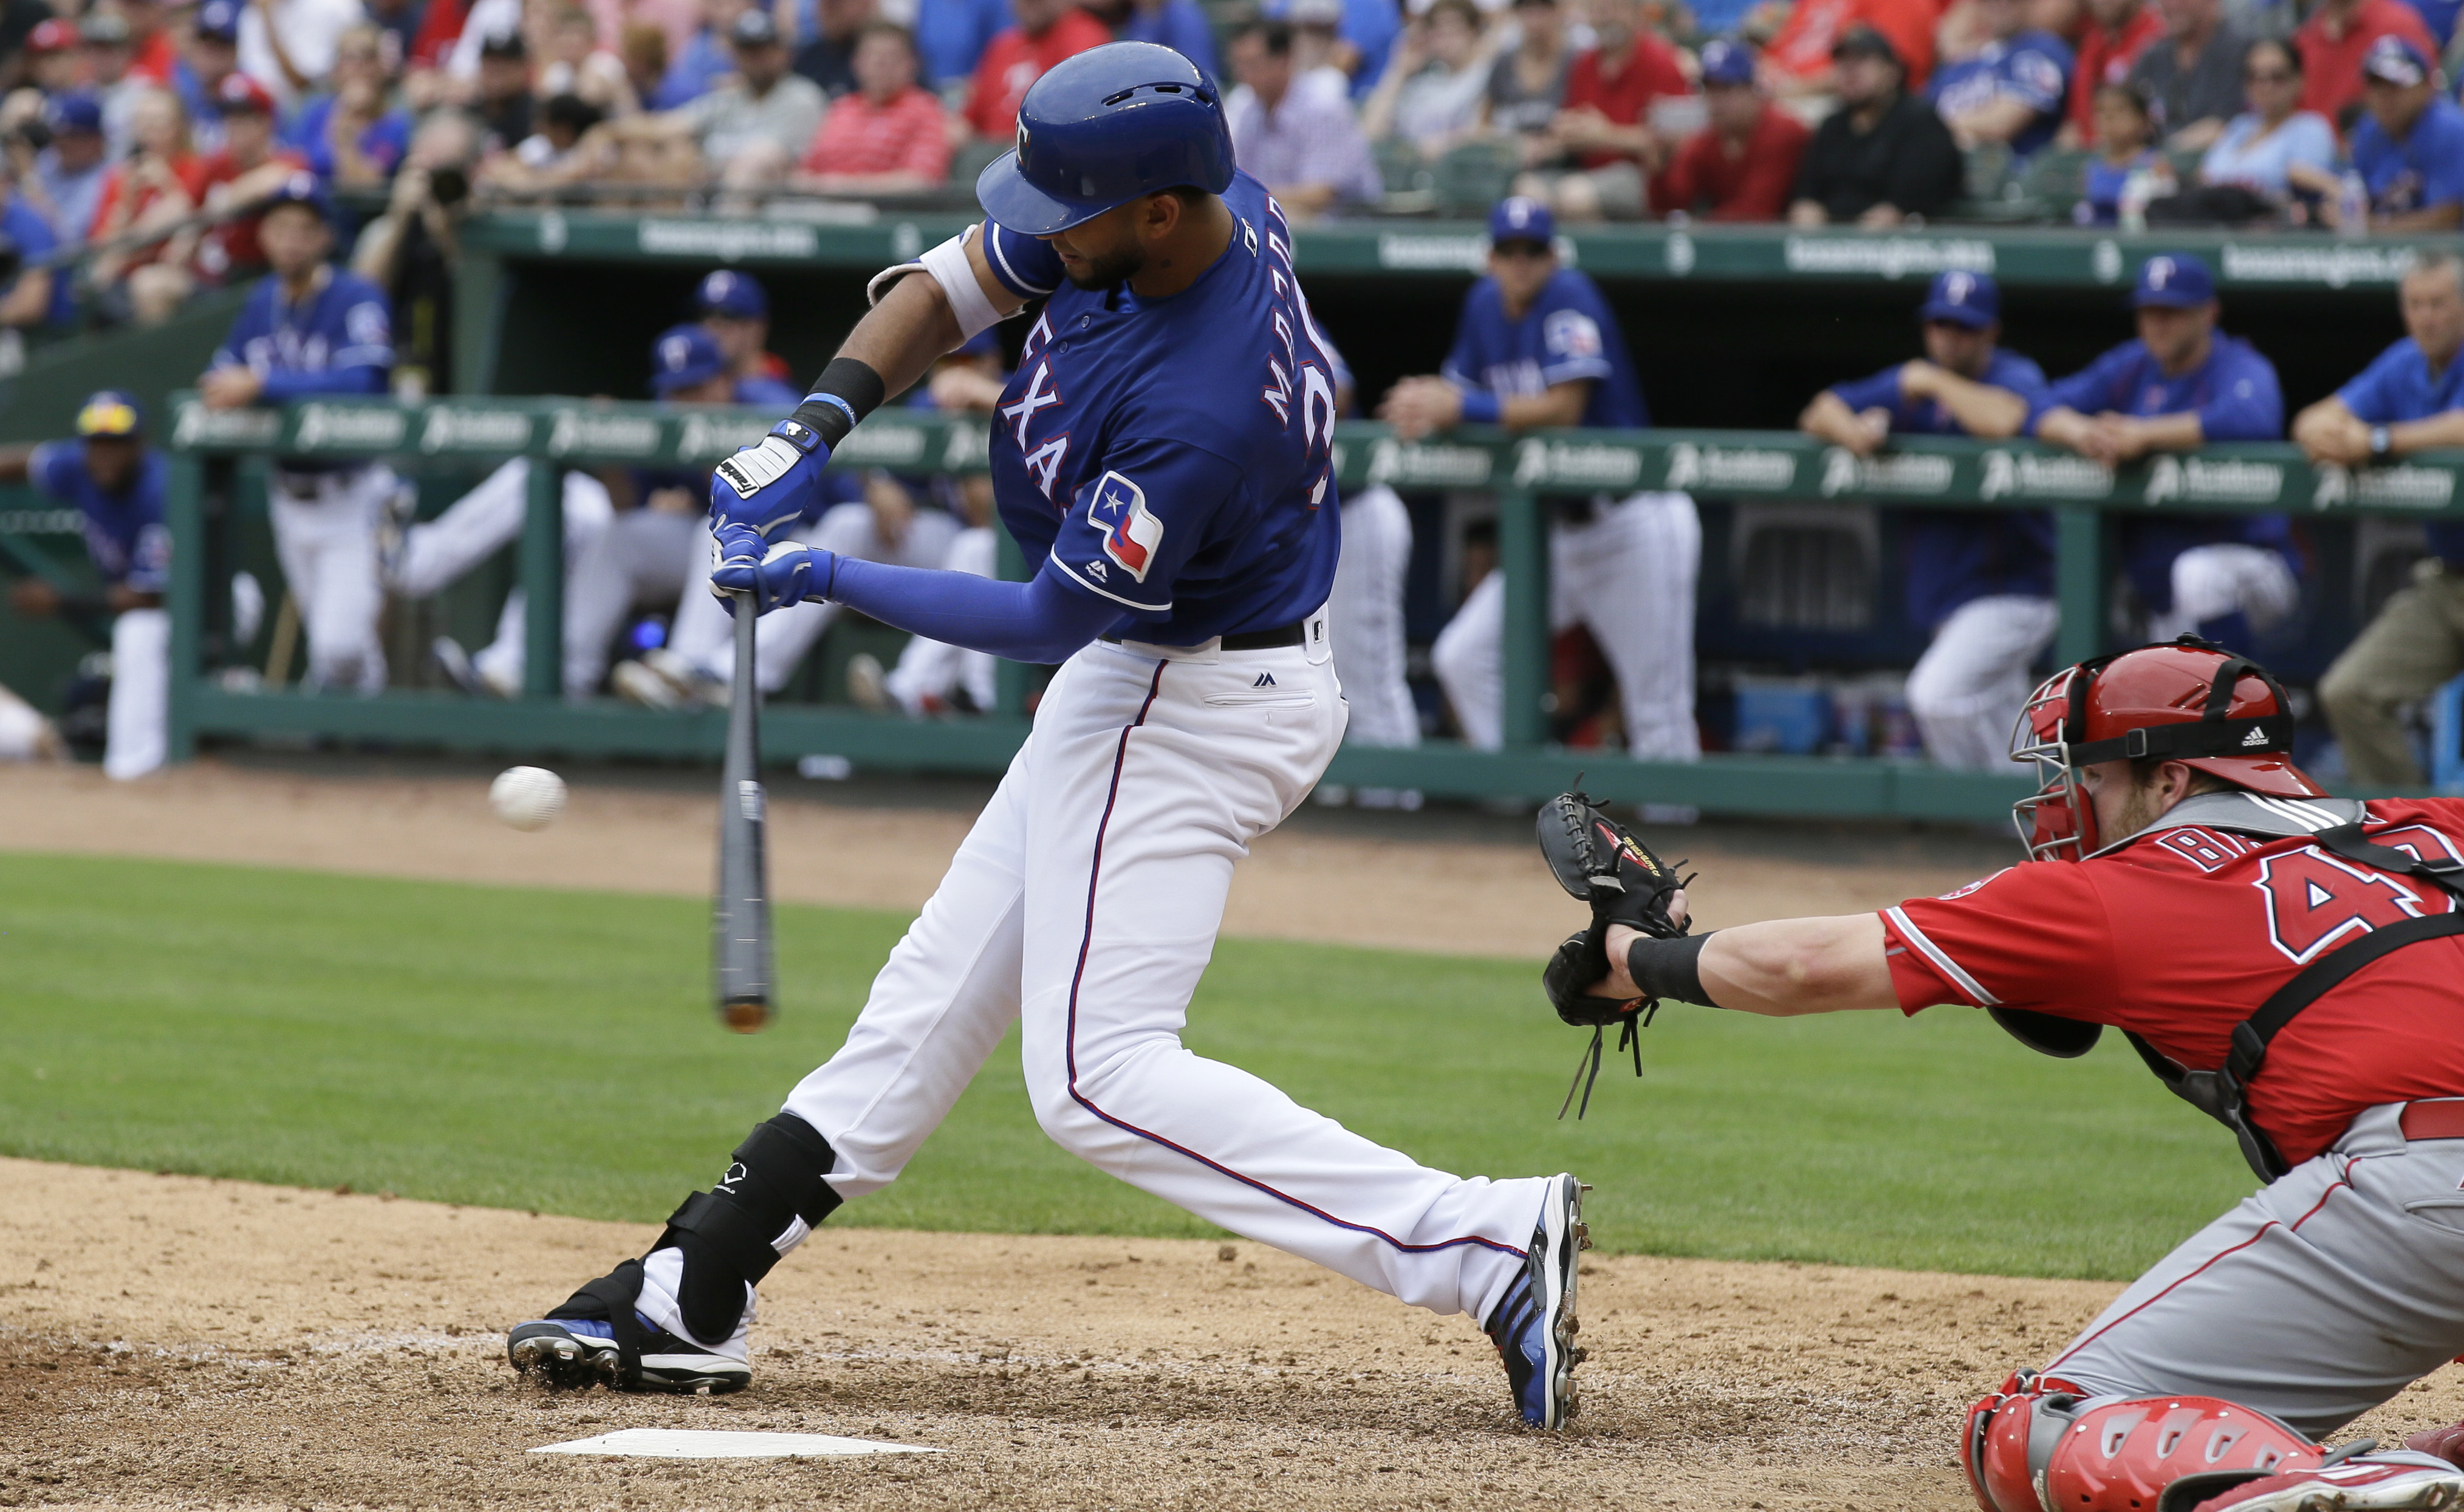 Texas Rangers Nomar Mazara (30) hits an RBI single in front of Los Angeles Angels catcher Jett Bandy (47) during the sixth inning of a baseball game in Arlington, Texas, Wednesday, May 25, 2016. Rangers' Rougned Odor scored on the play. (AP Photo/LM Otero